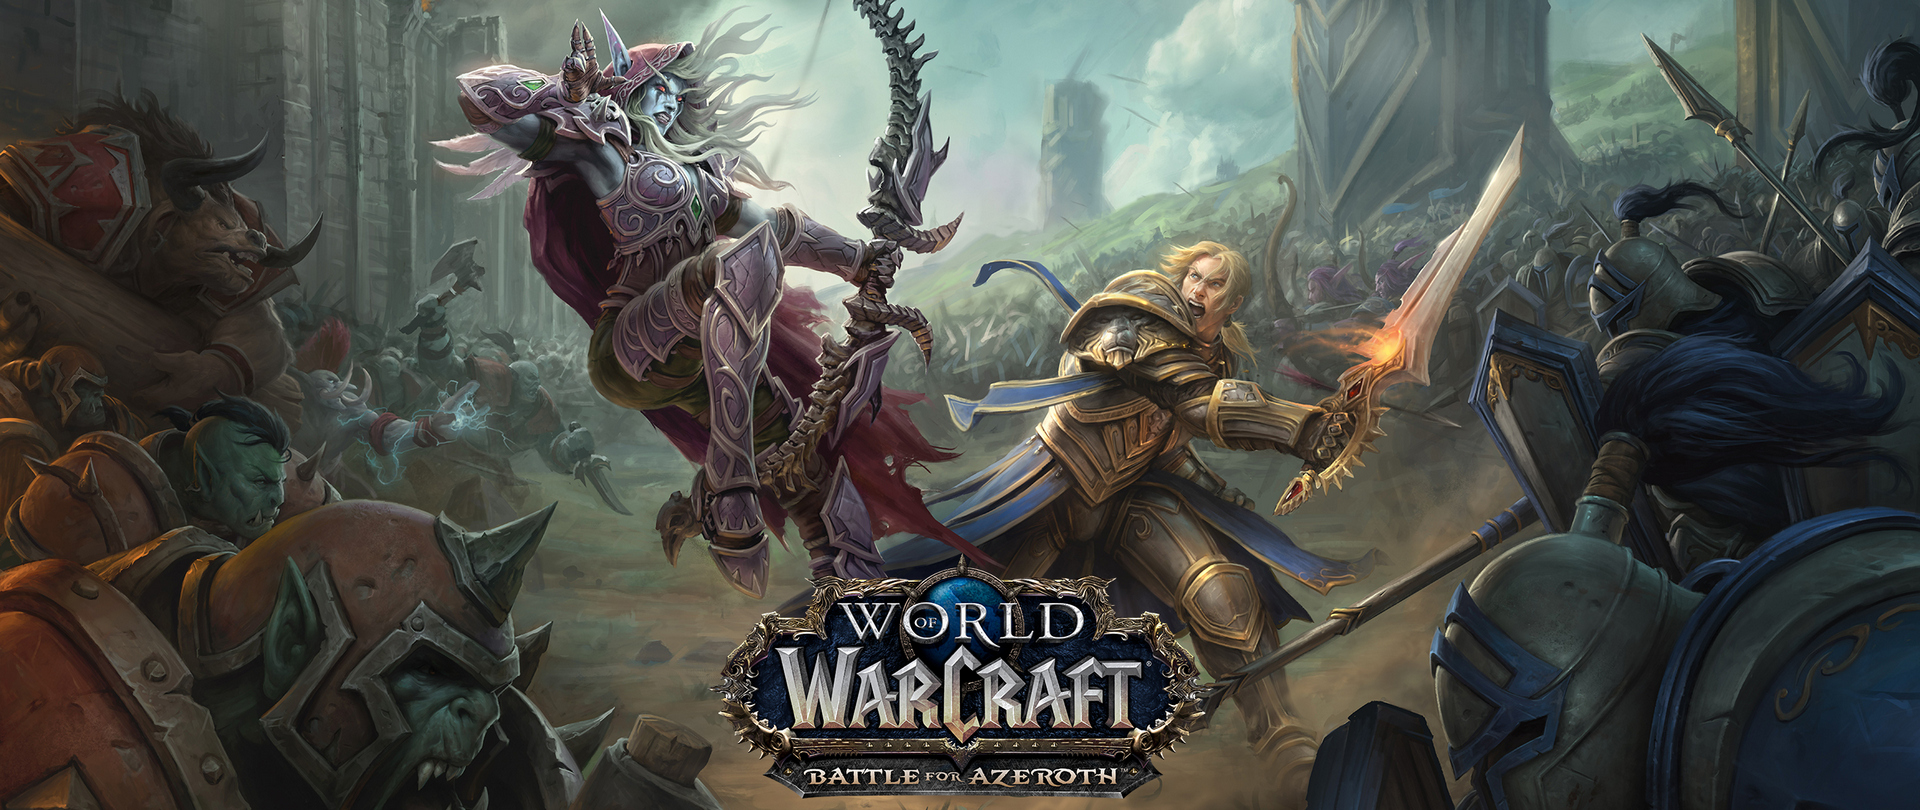 World of warcraft hentaiimages nude video